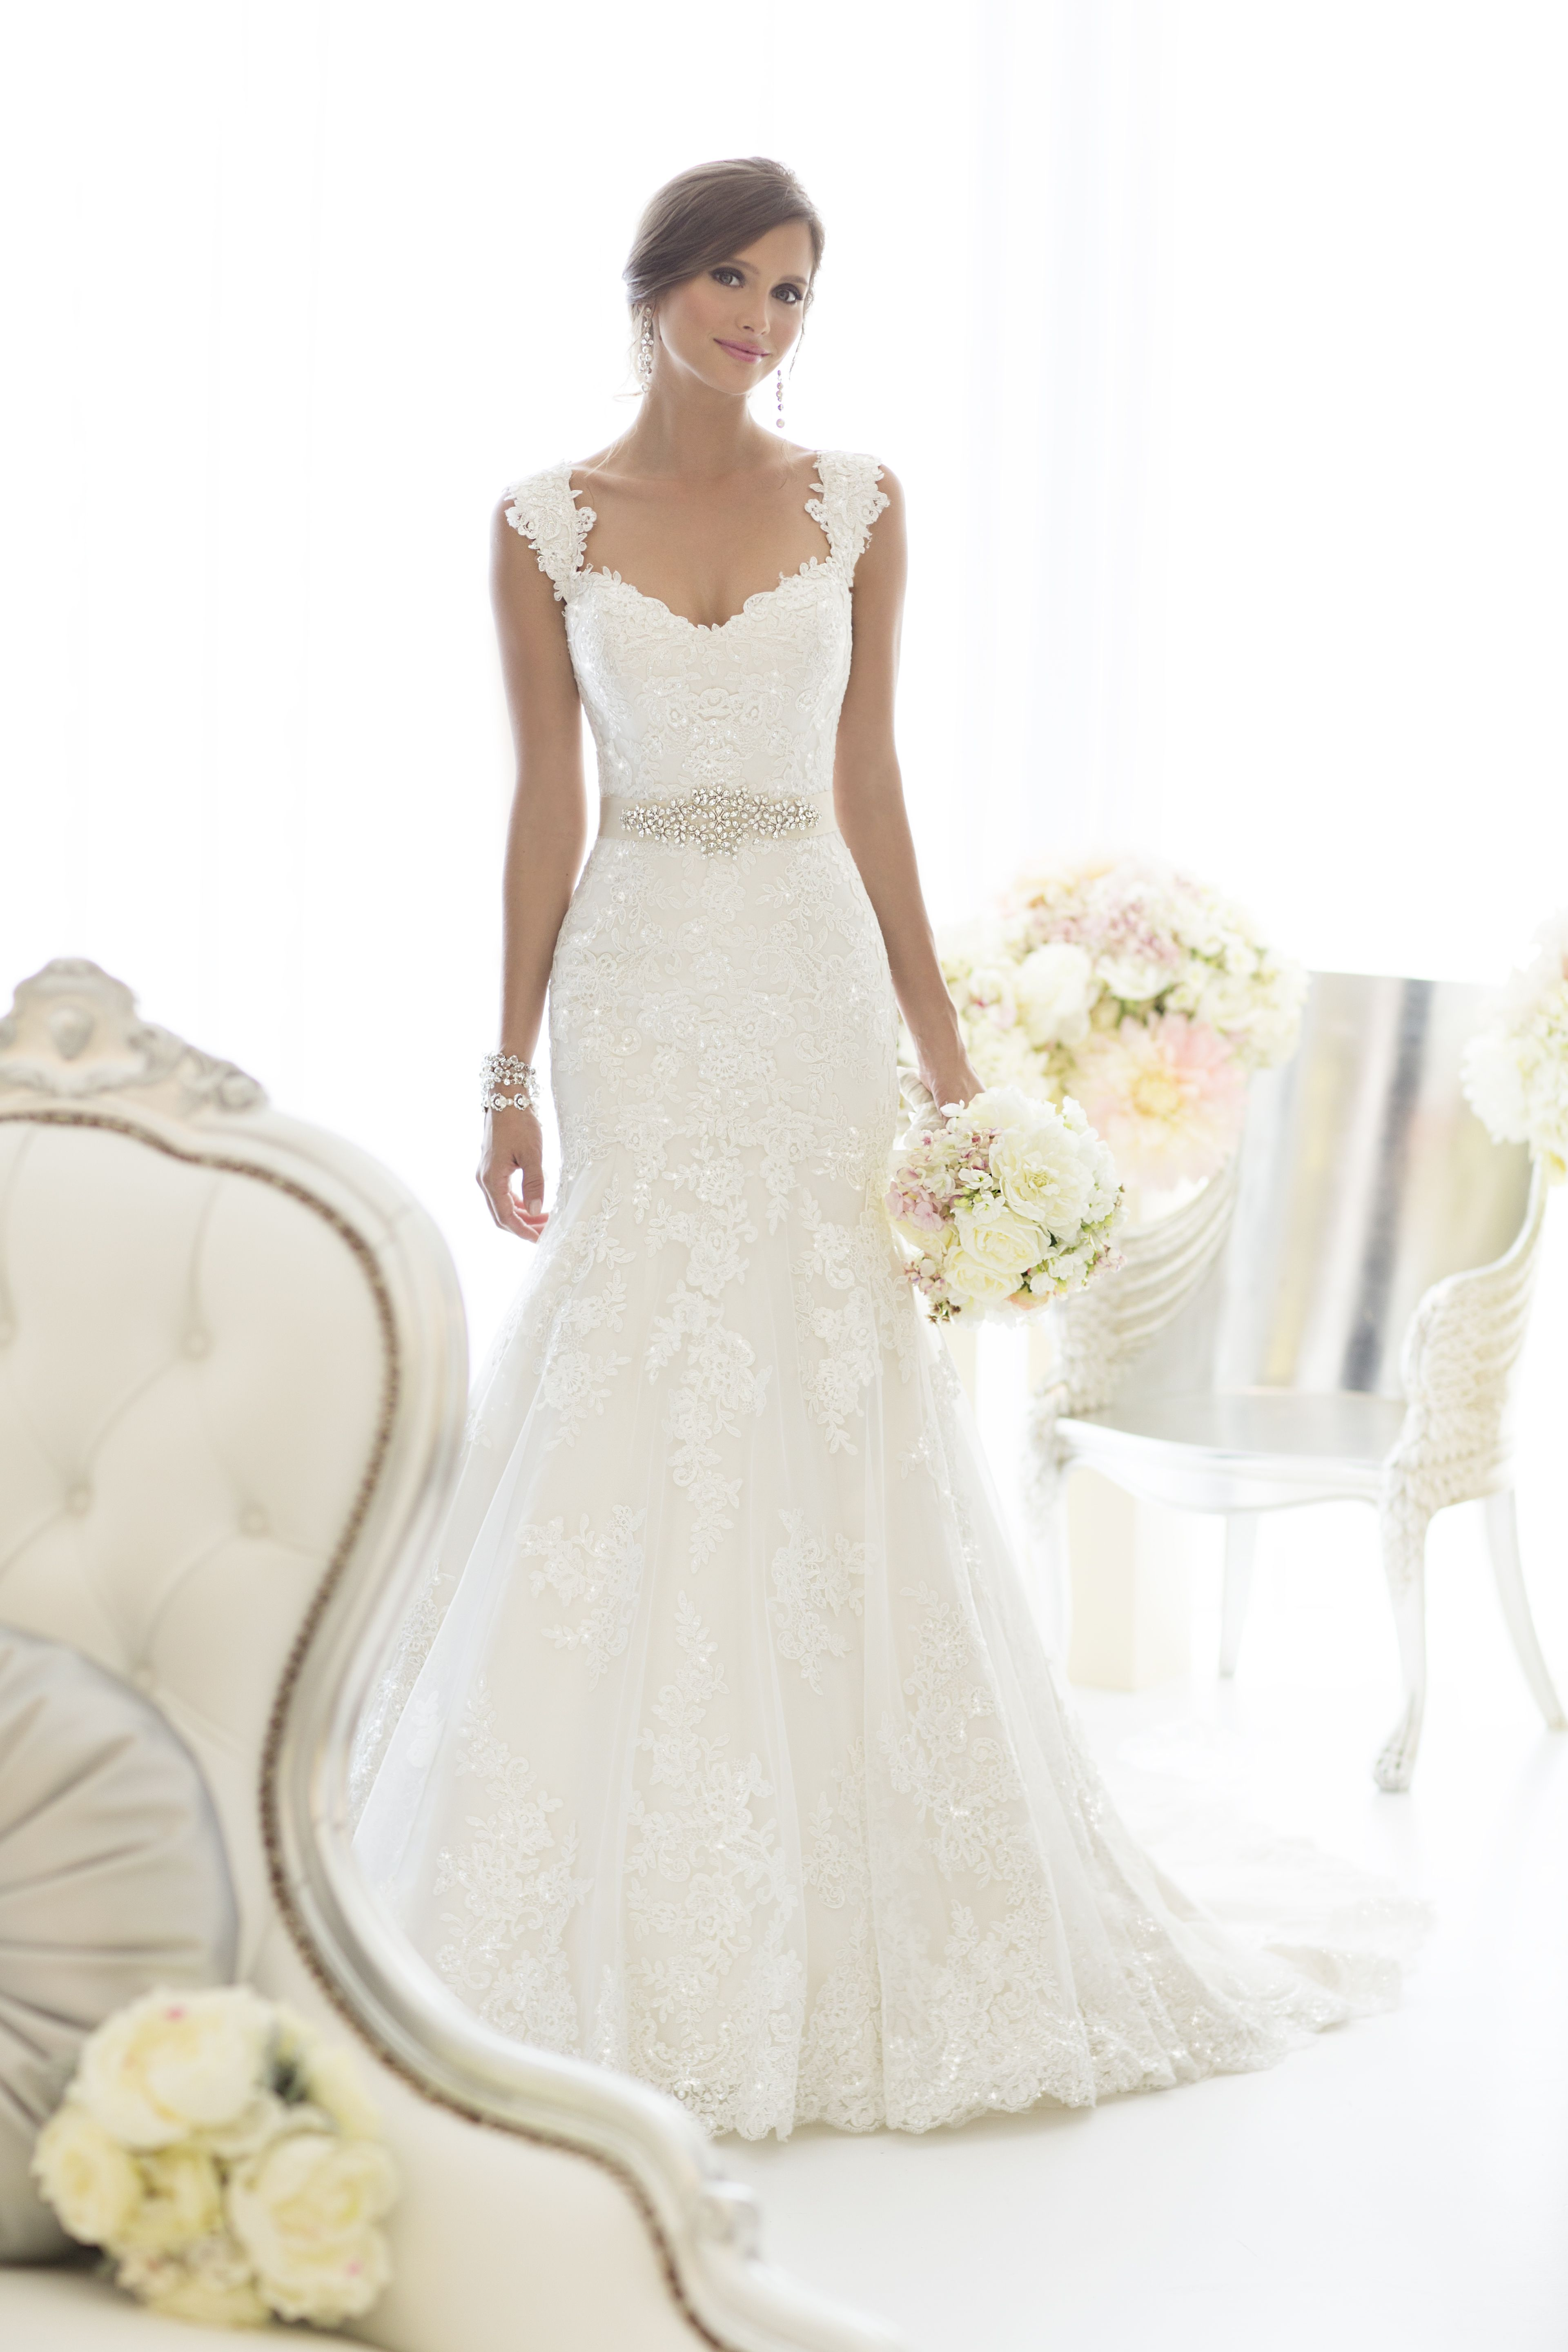 Southern essense of australia d lace wedding gown off the